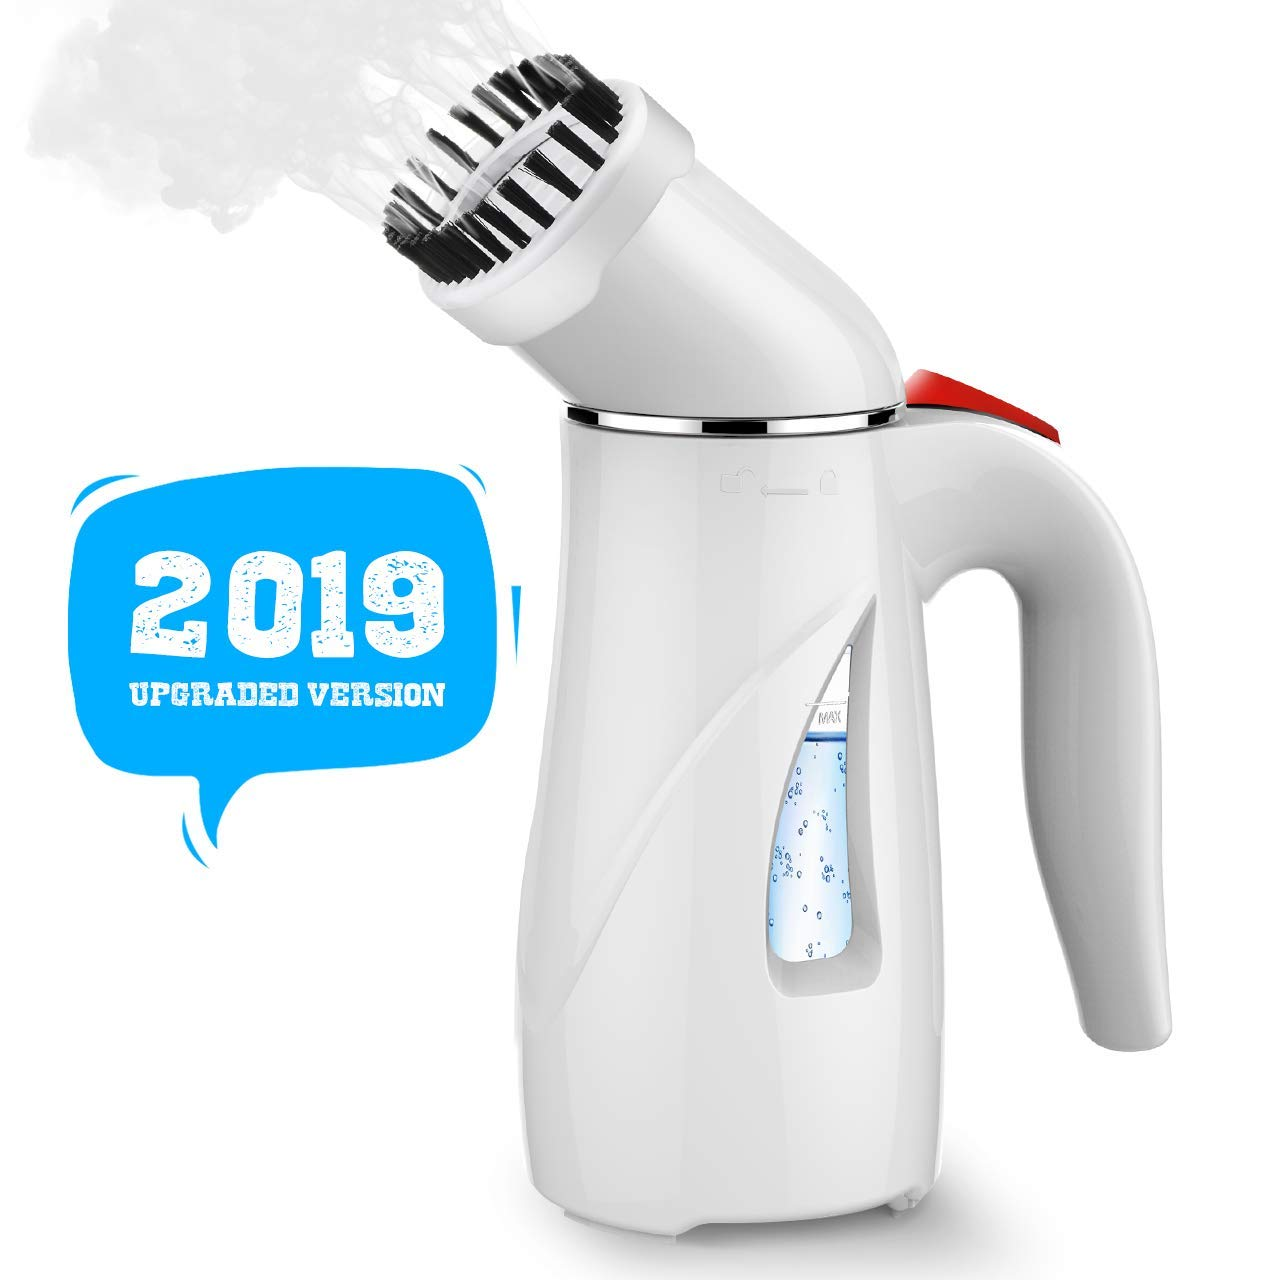 Homitt Steamer for Clothes, Handheld Steamer, 7-1 Portable Clothes Steamer/Wrinkle Remover/Sanitize/Sterilize/Refresh with Fast Heat-up Function& Safe Use for Travel/Home/Kitchen[White] by Homitt